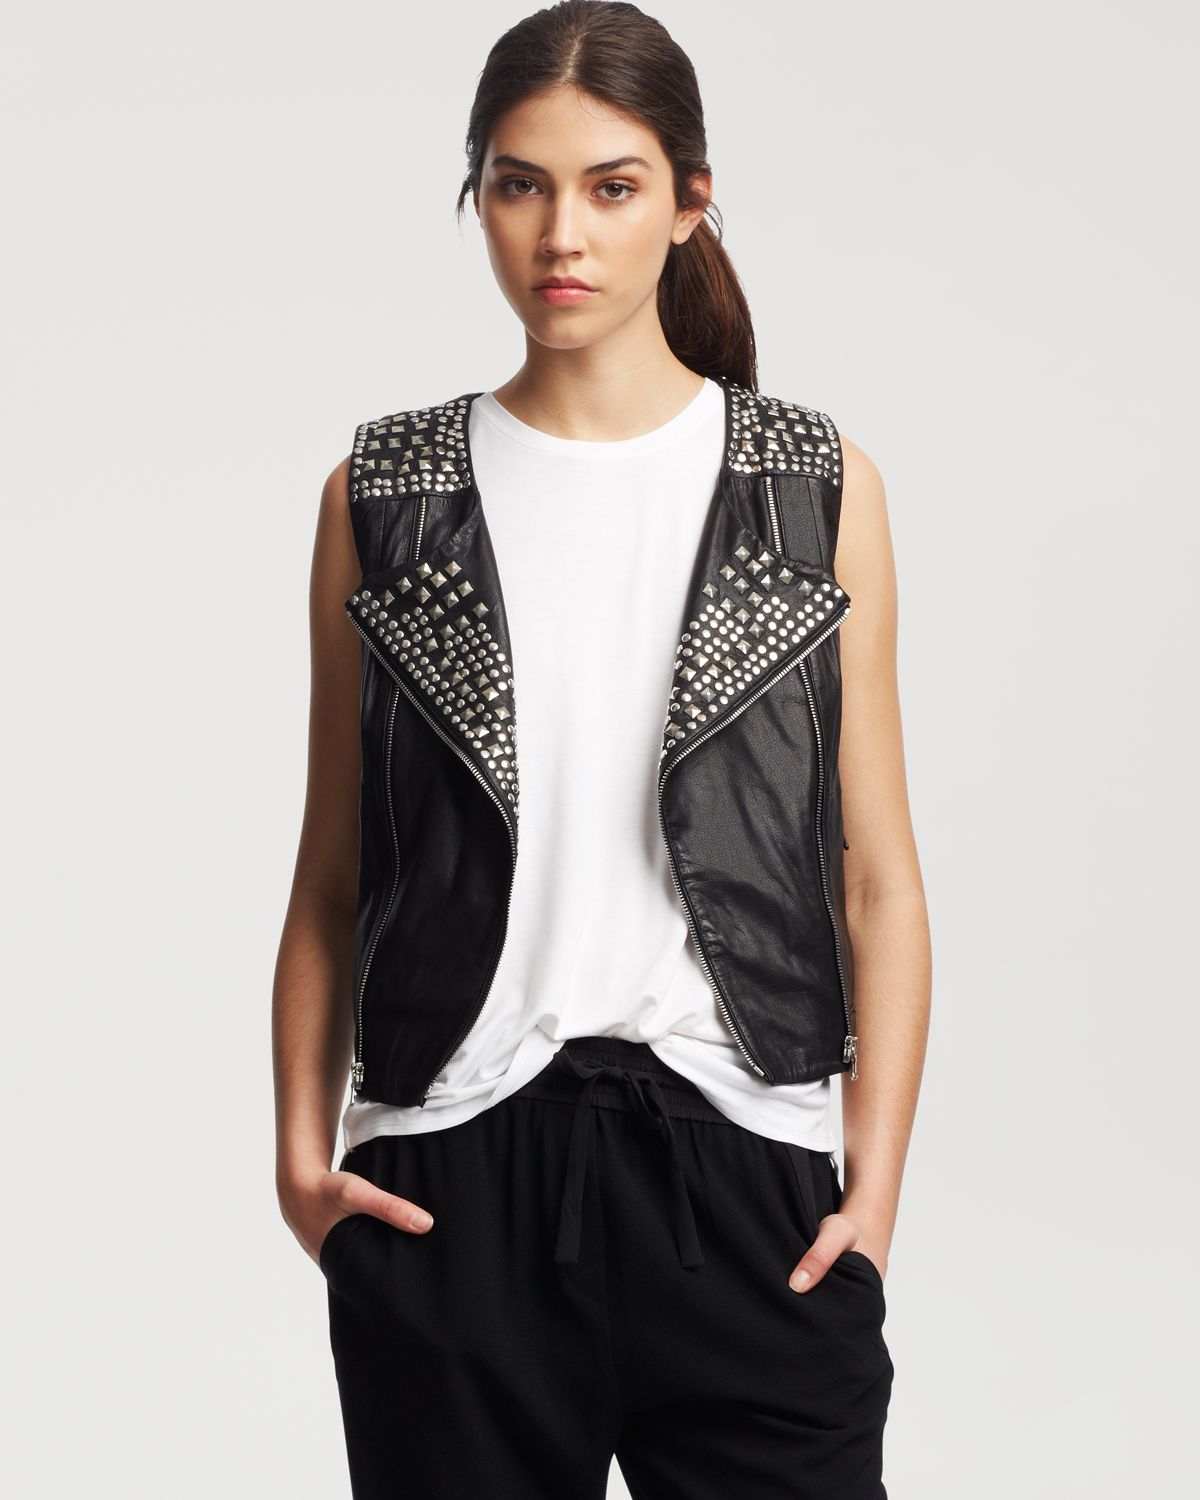 Kenneth Cole New York Harley Studded Vest | Bloomingdale's